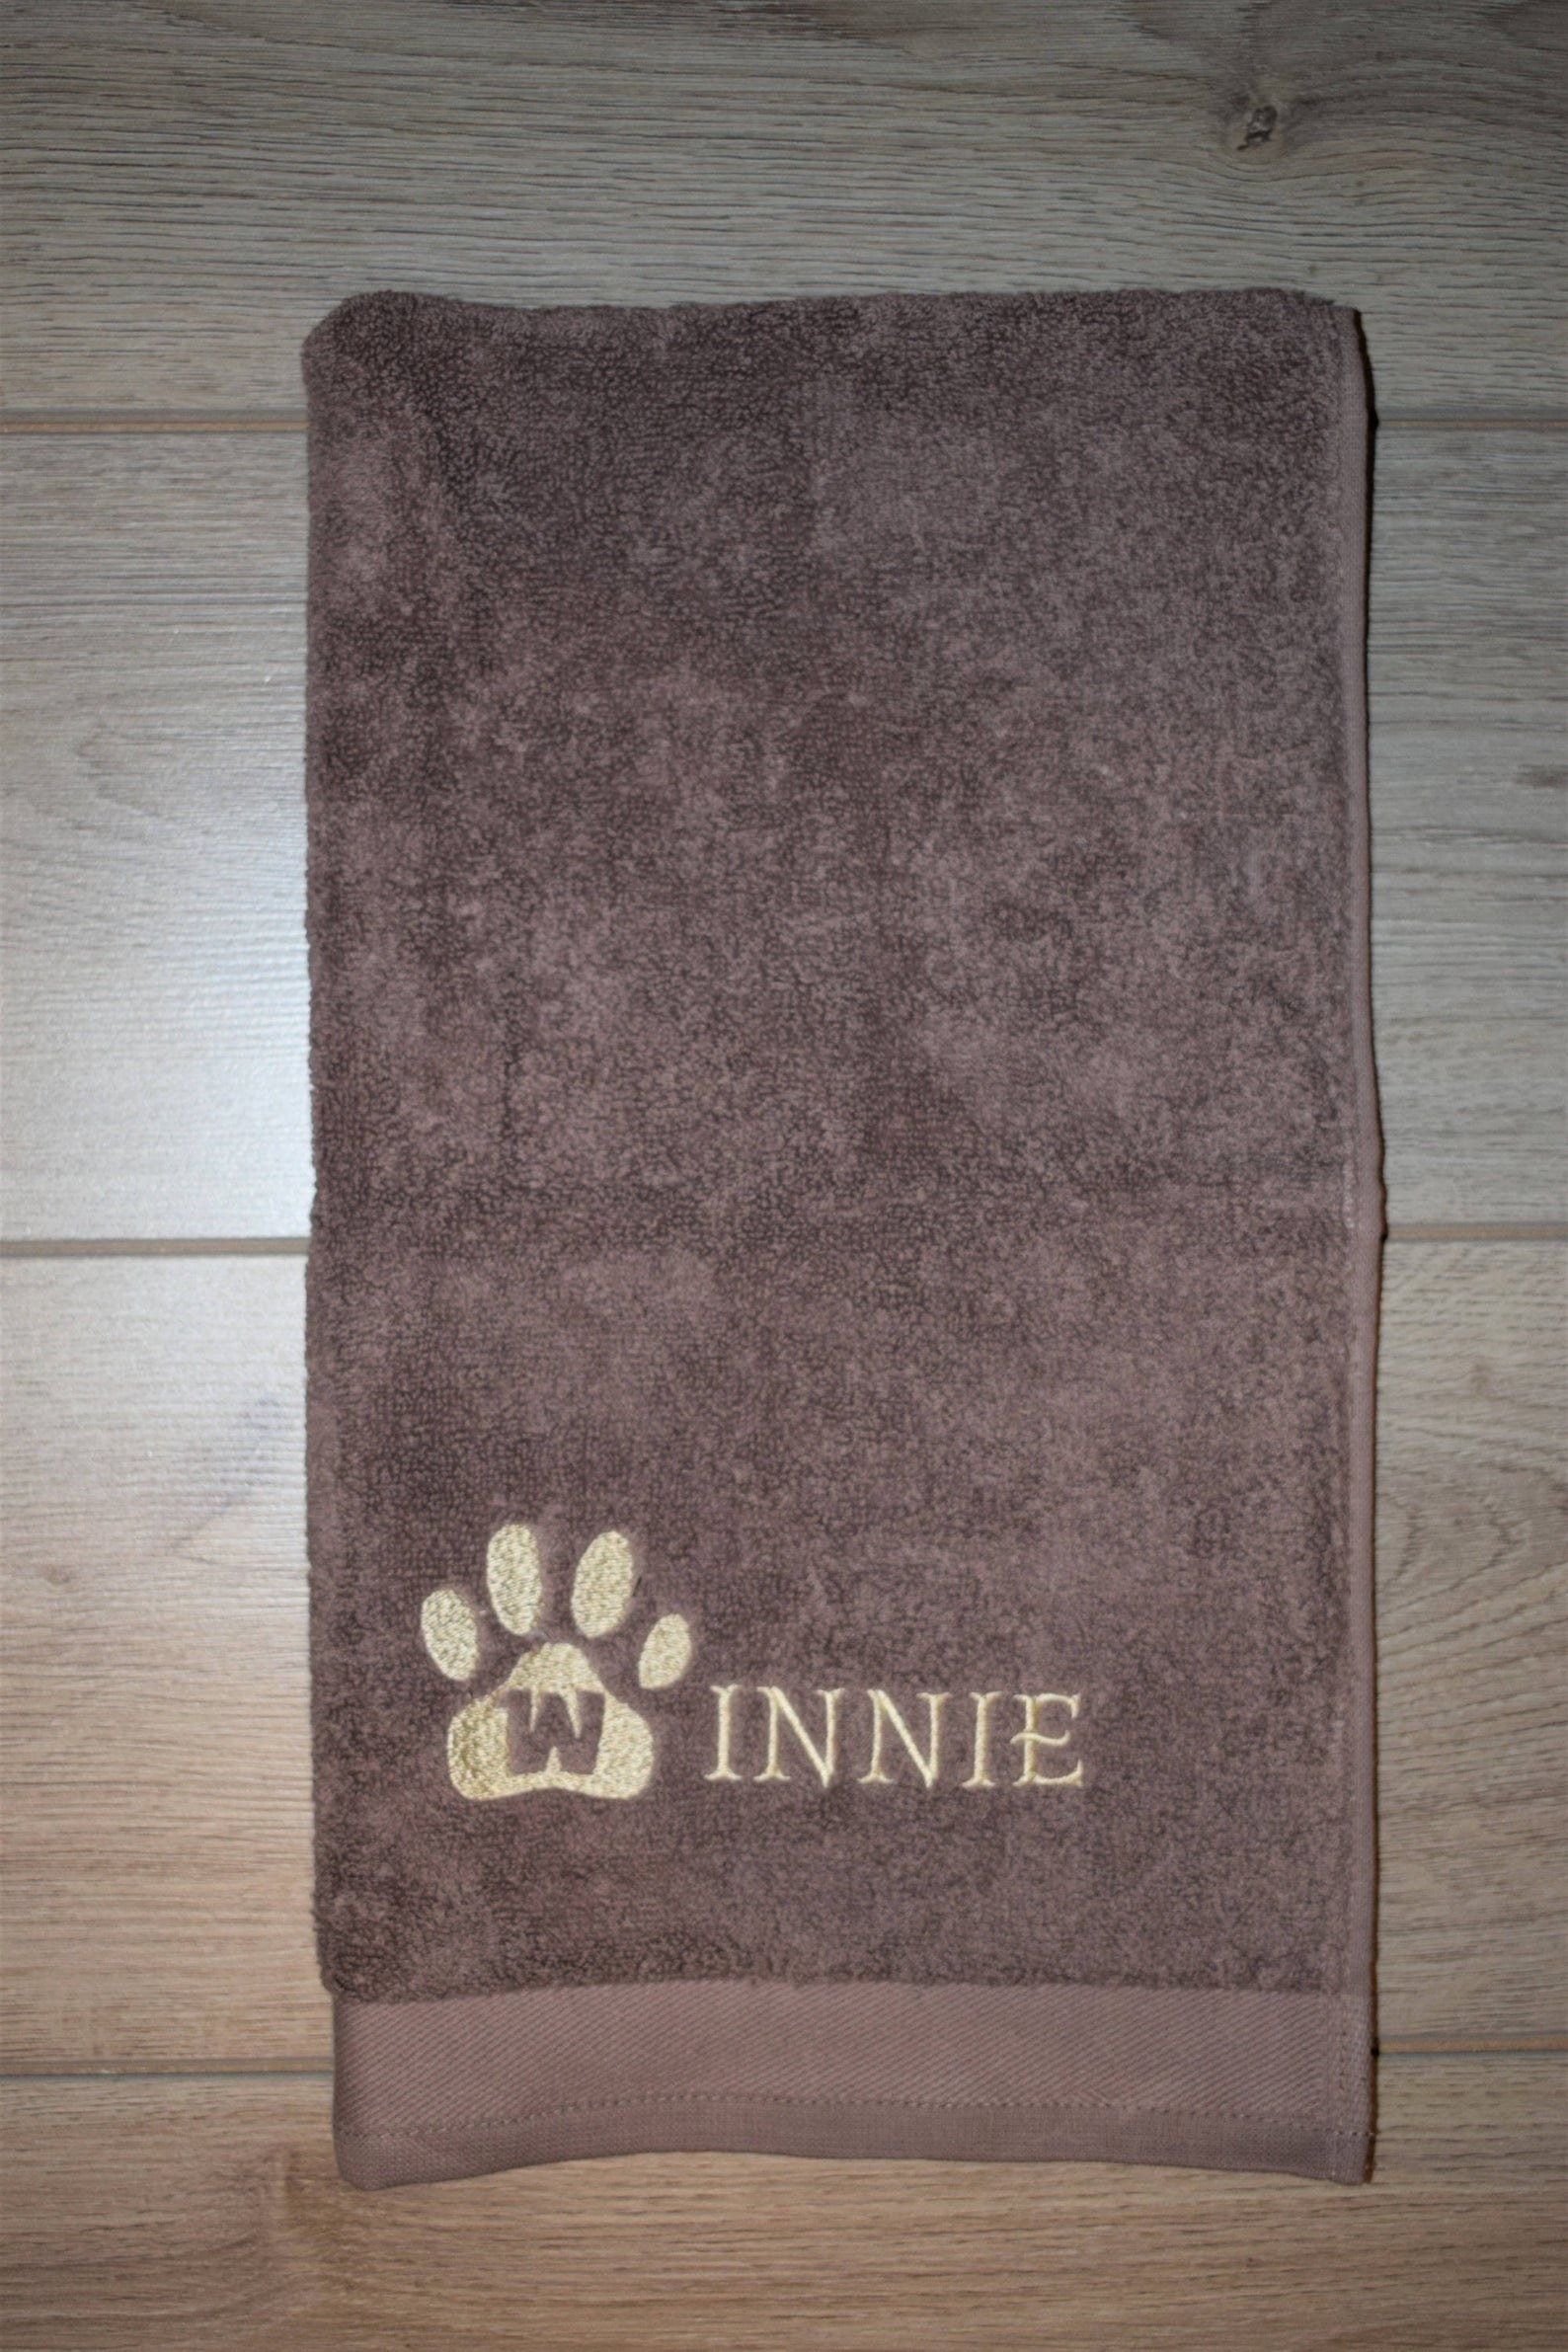 The towel with a personalization on it